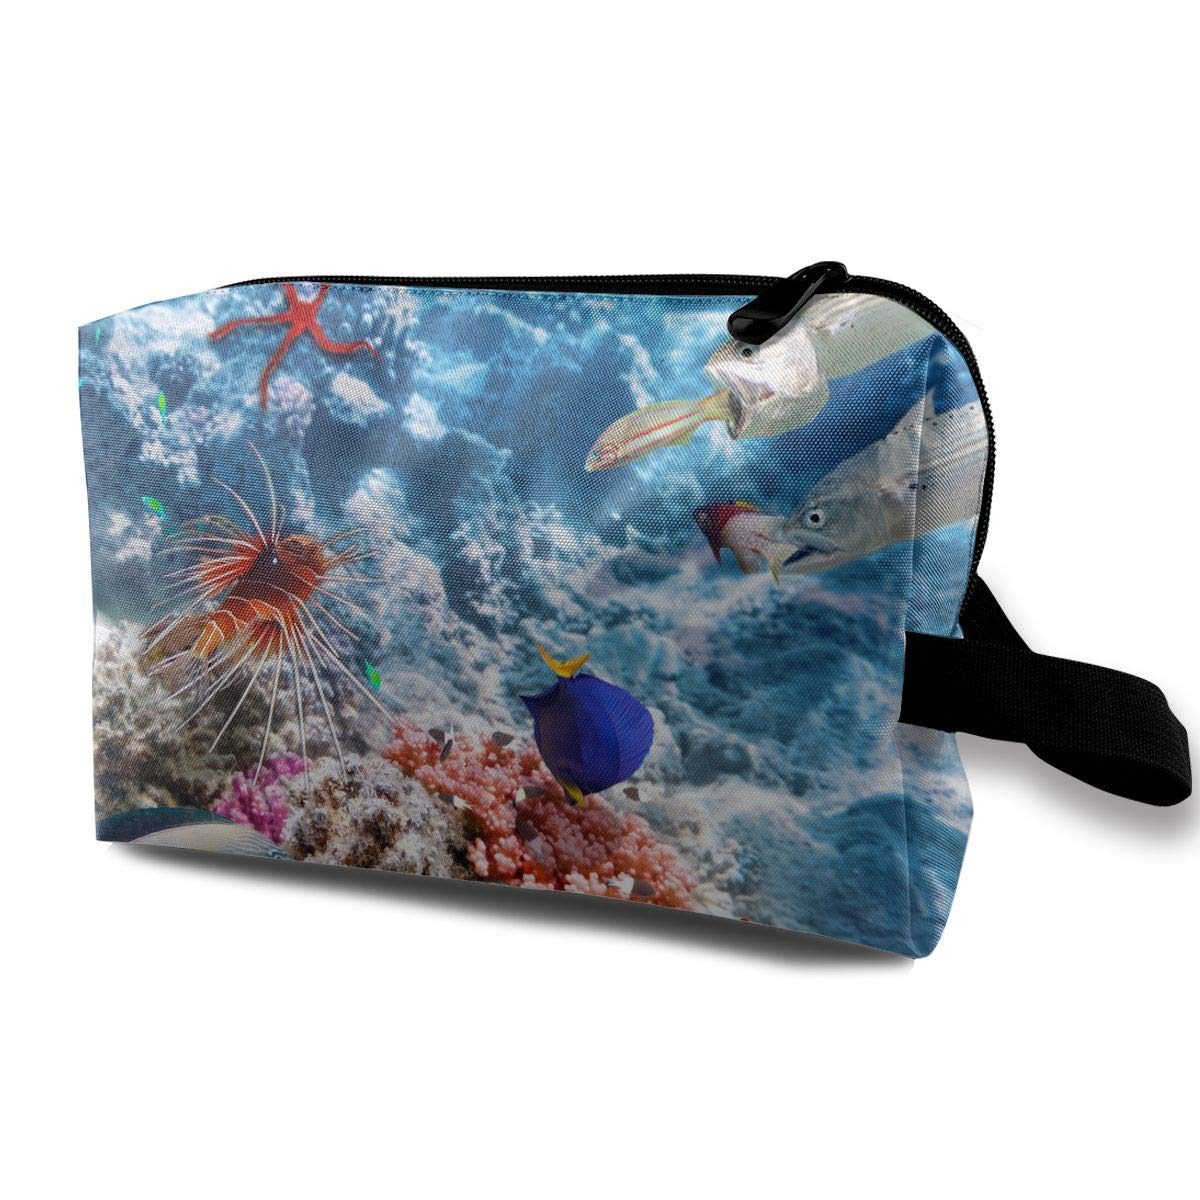 85a848b74ab4 Amazon.com: Travel Cosmetic Bag Cool Deep Ocean Fishes Unisex Makeup ...